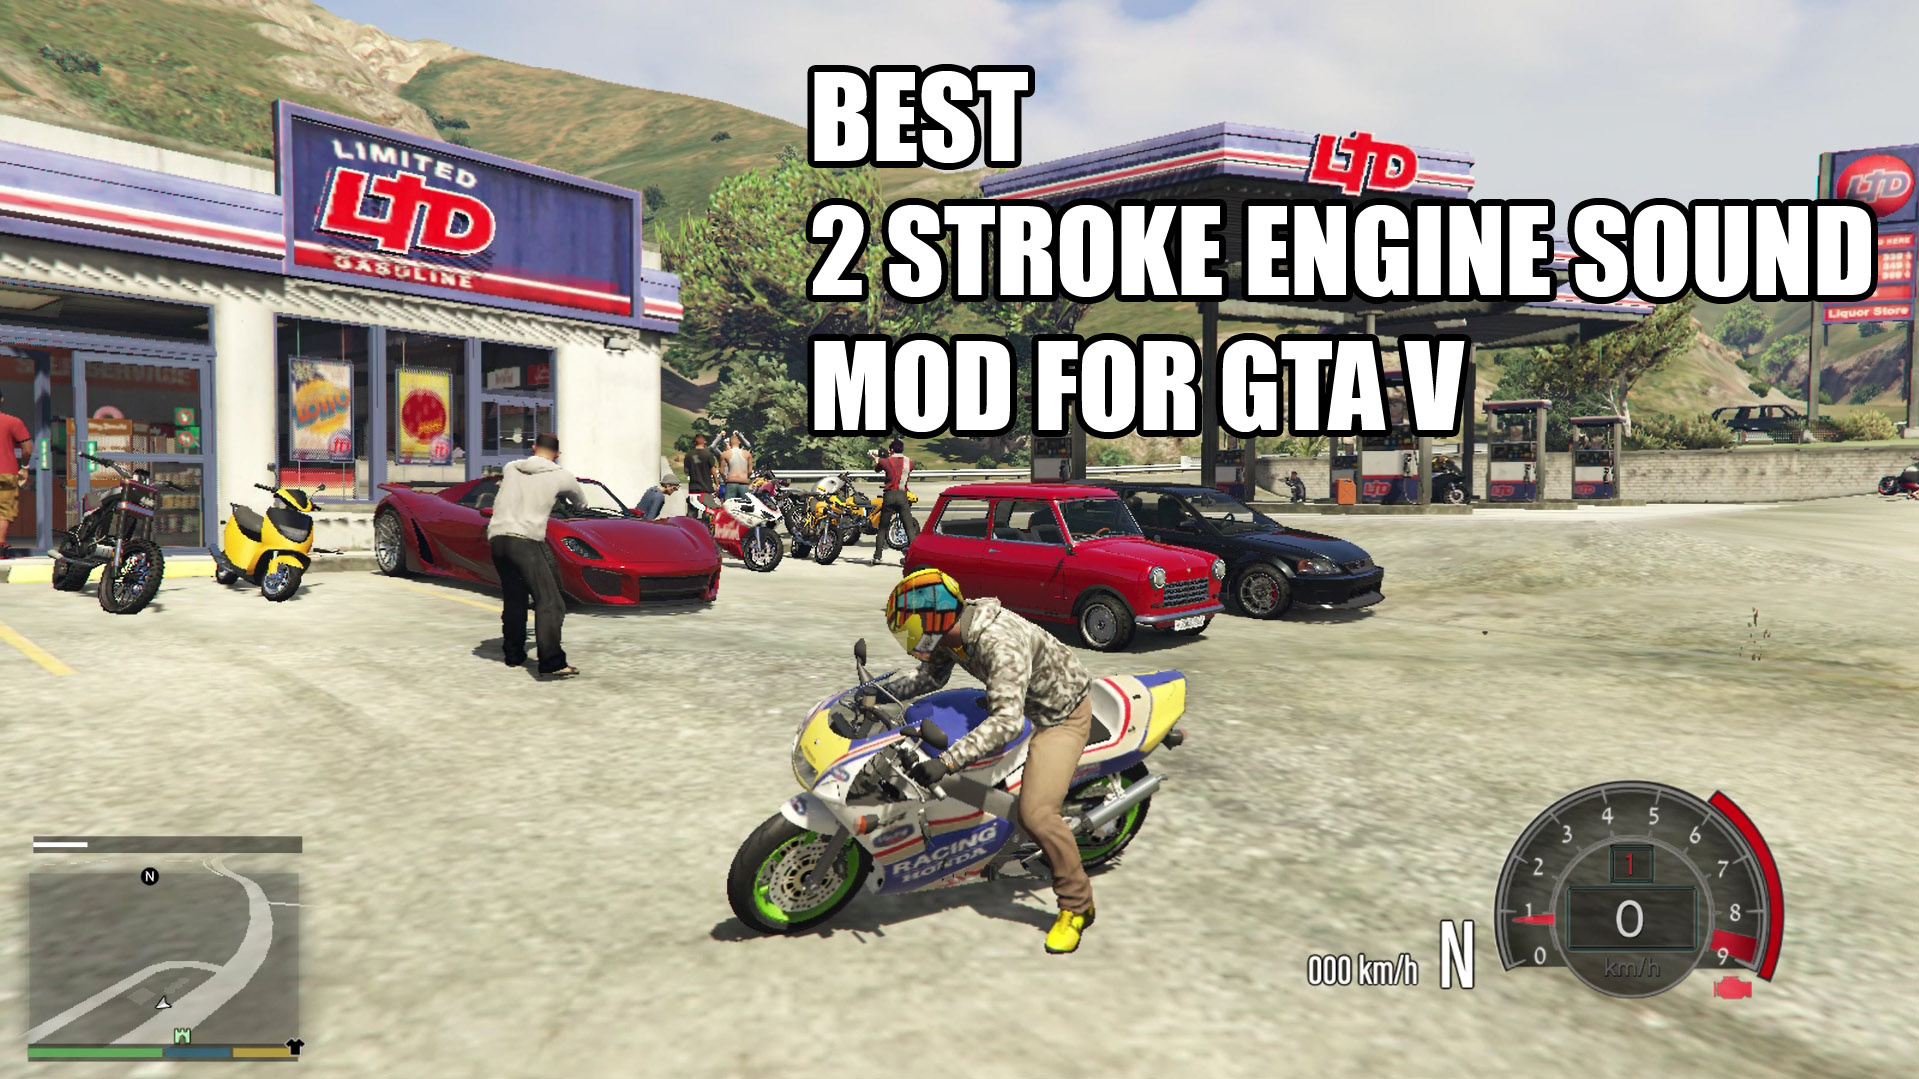 Best Two Stroke Engine Sound For Motorcycle Gta5 Mods Com